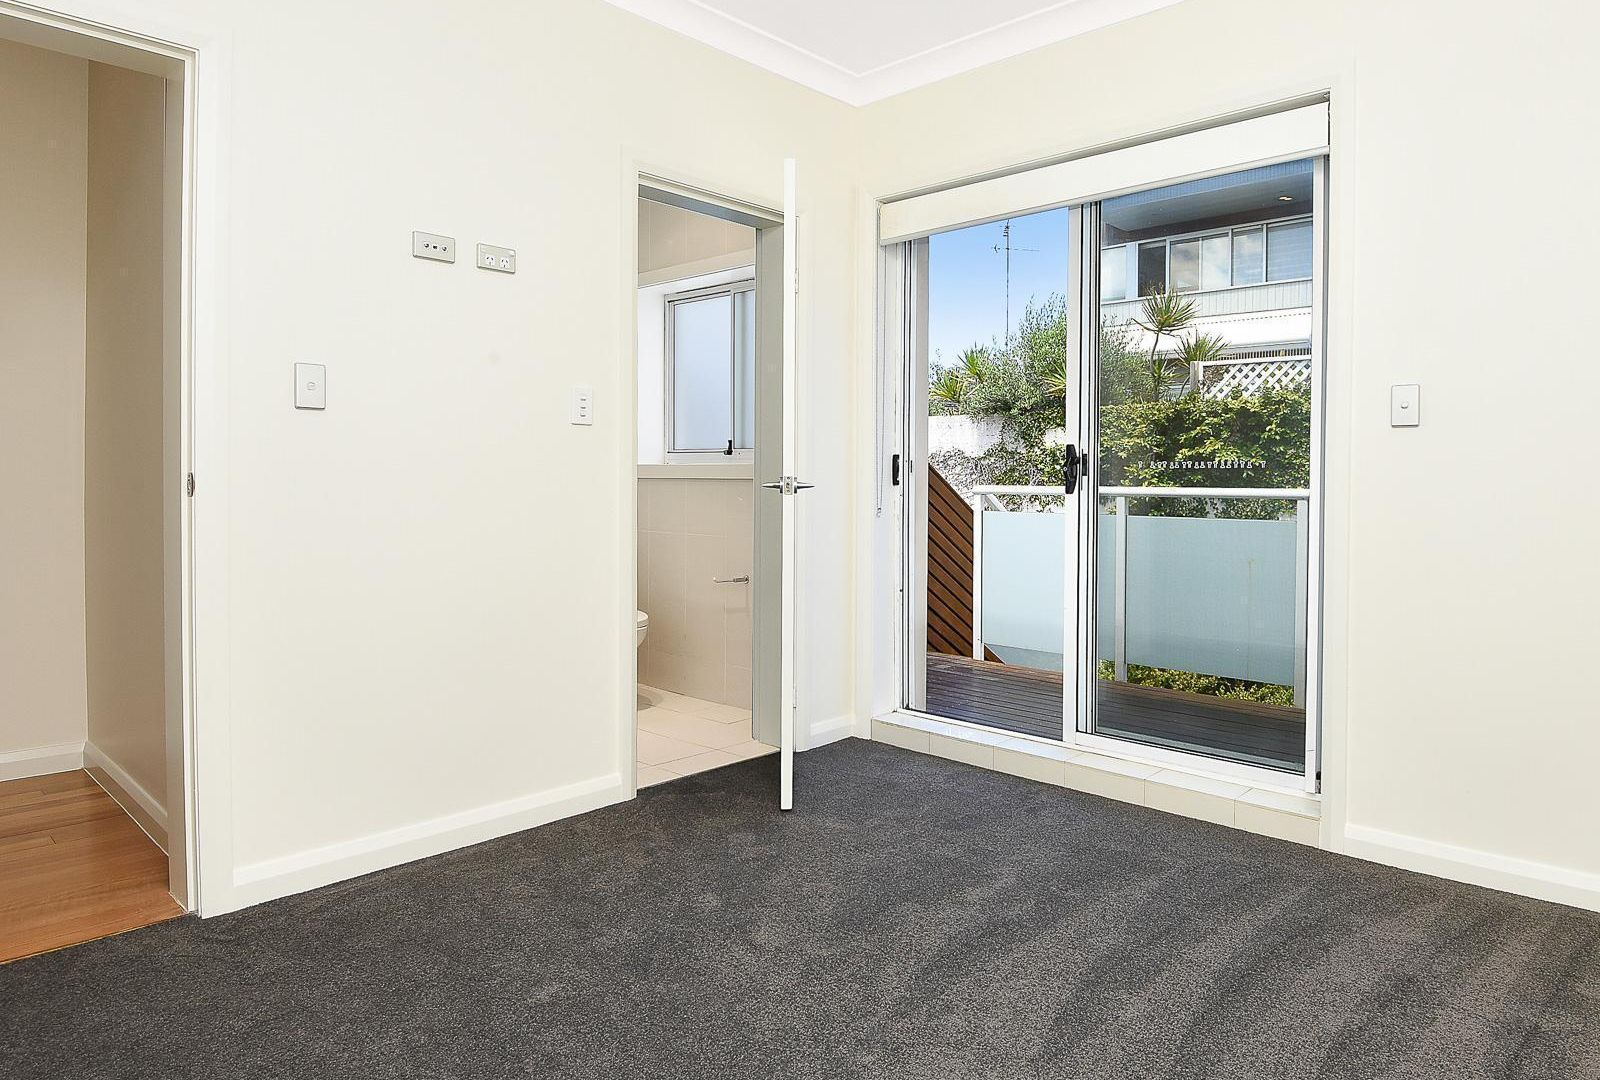 4/354 Clovelly Road, Clovelly NSW 2031, Image 1